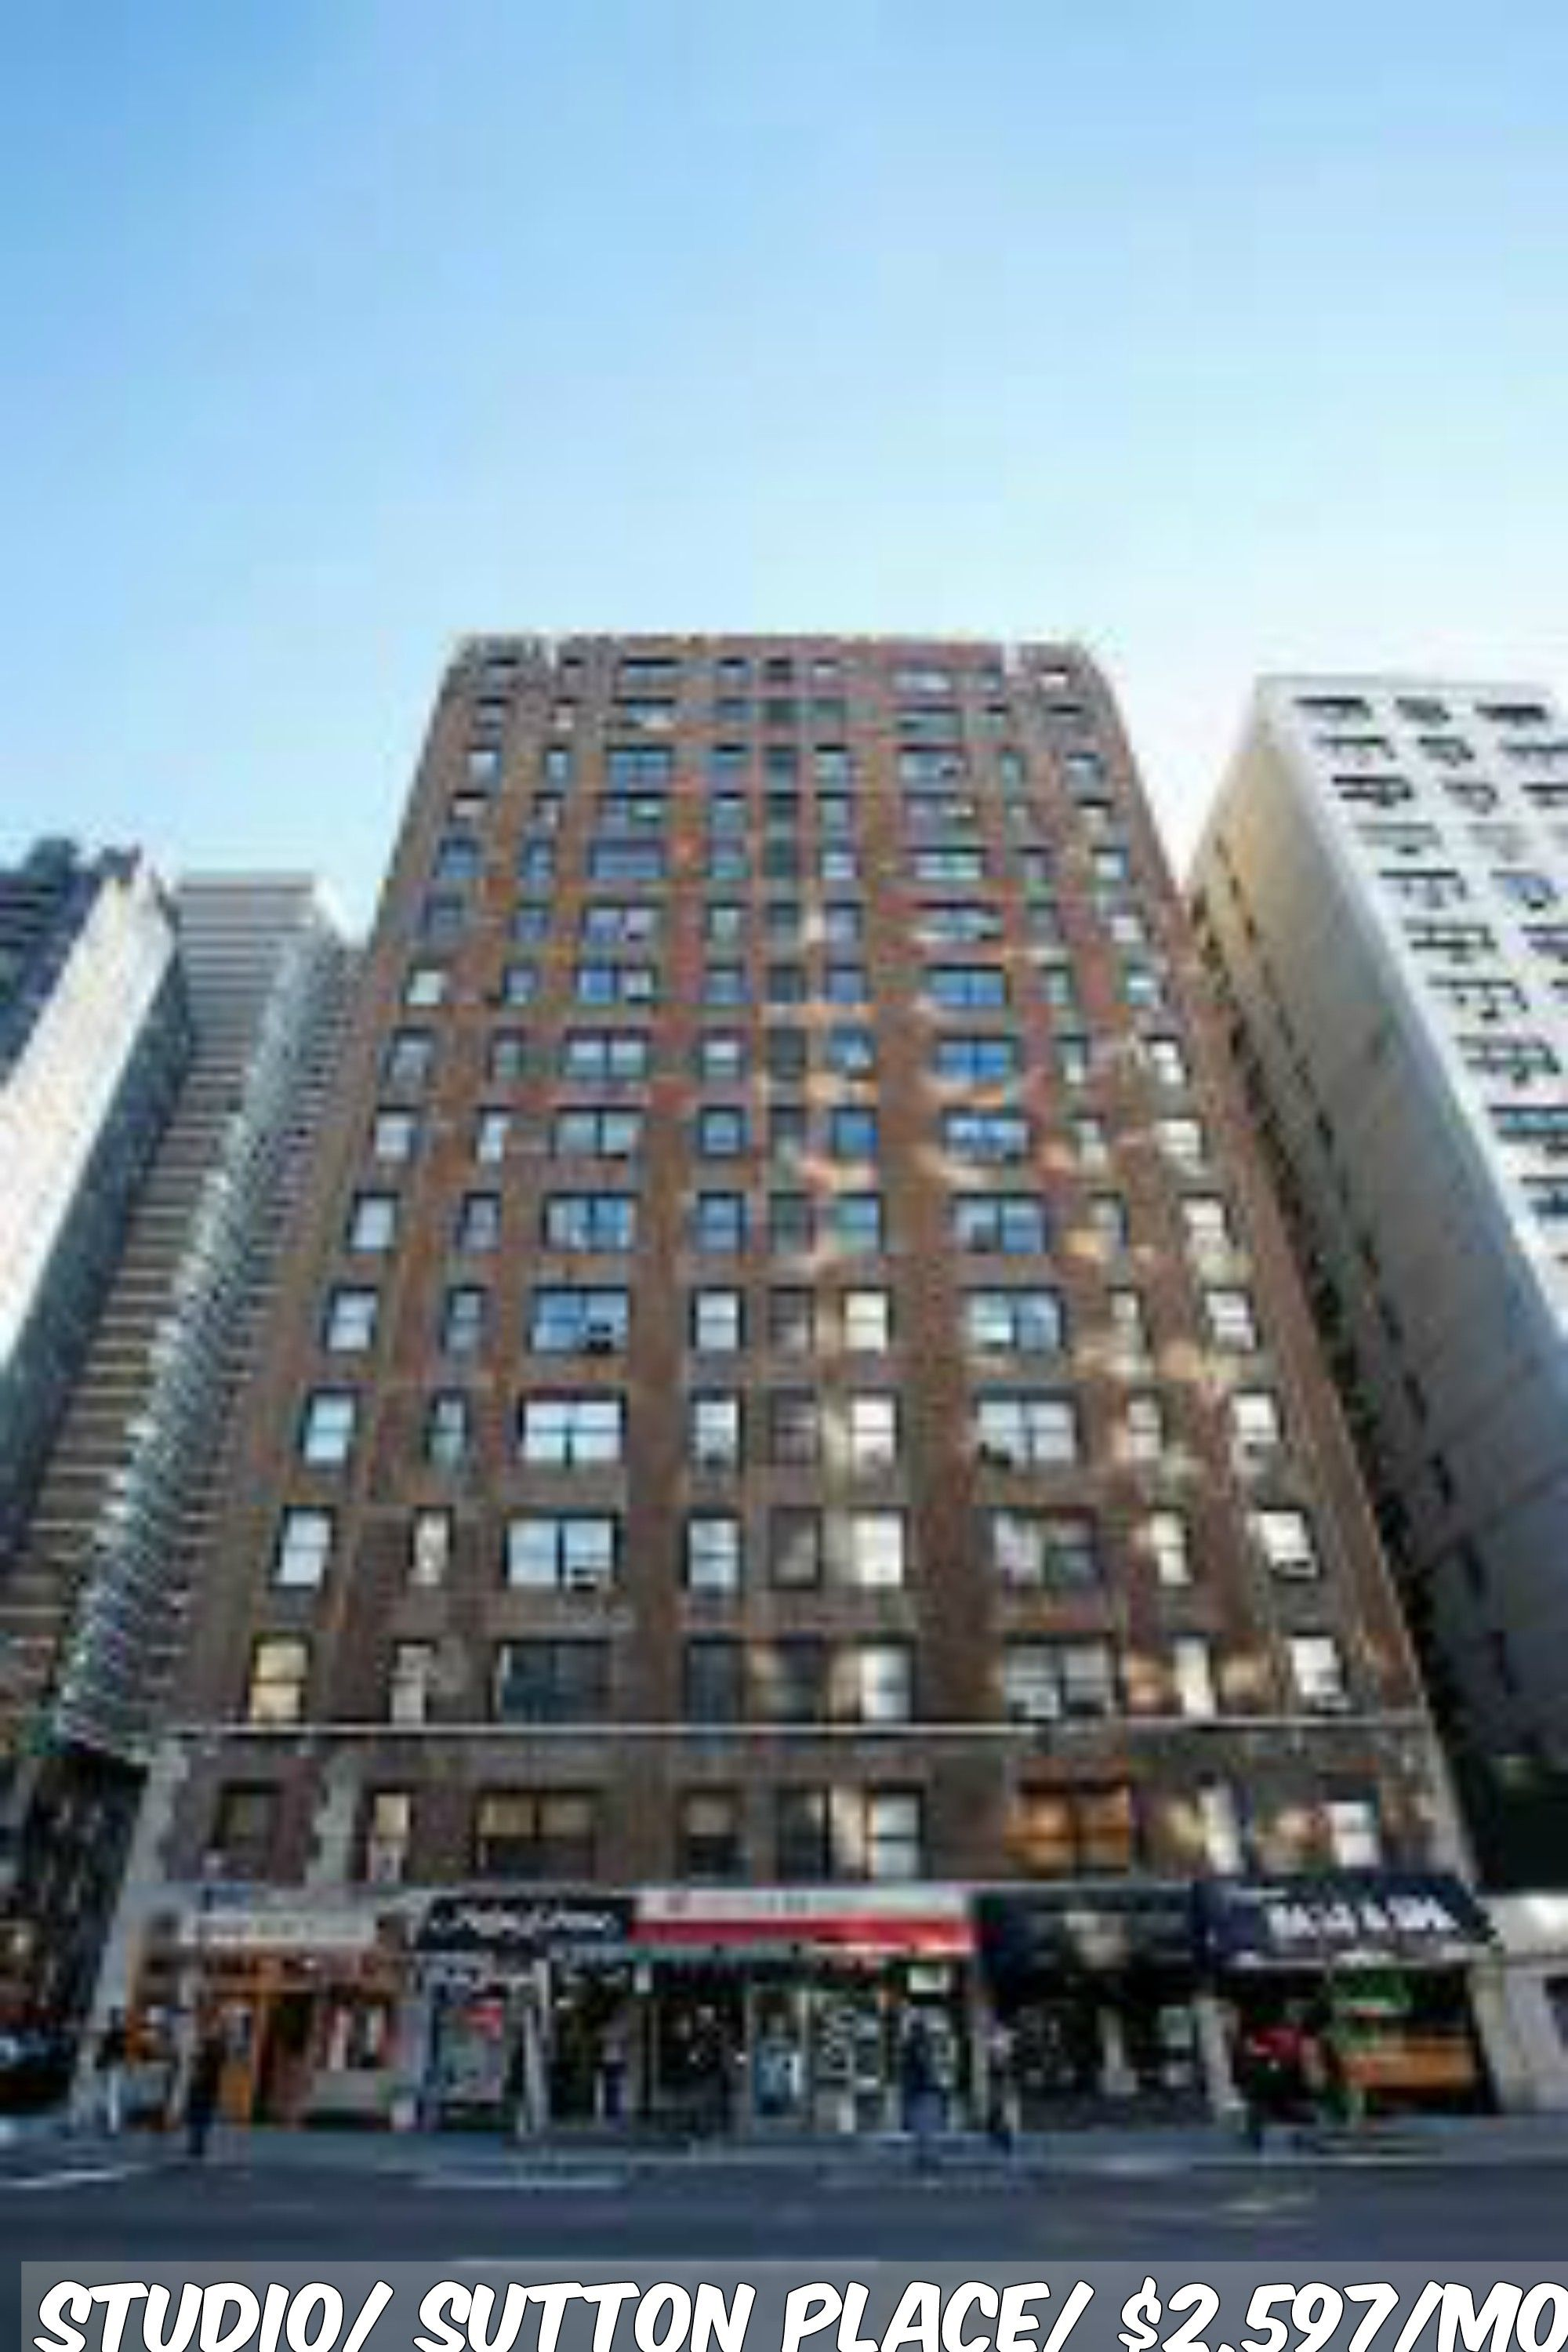 Studio apt for rent in Sutton Place at 2,597/mo.Doorman